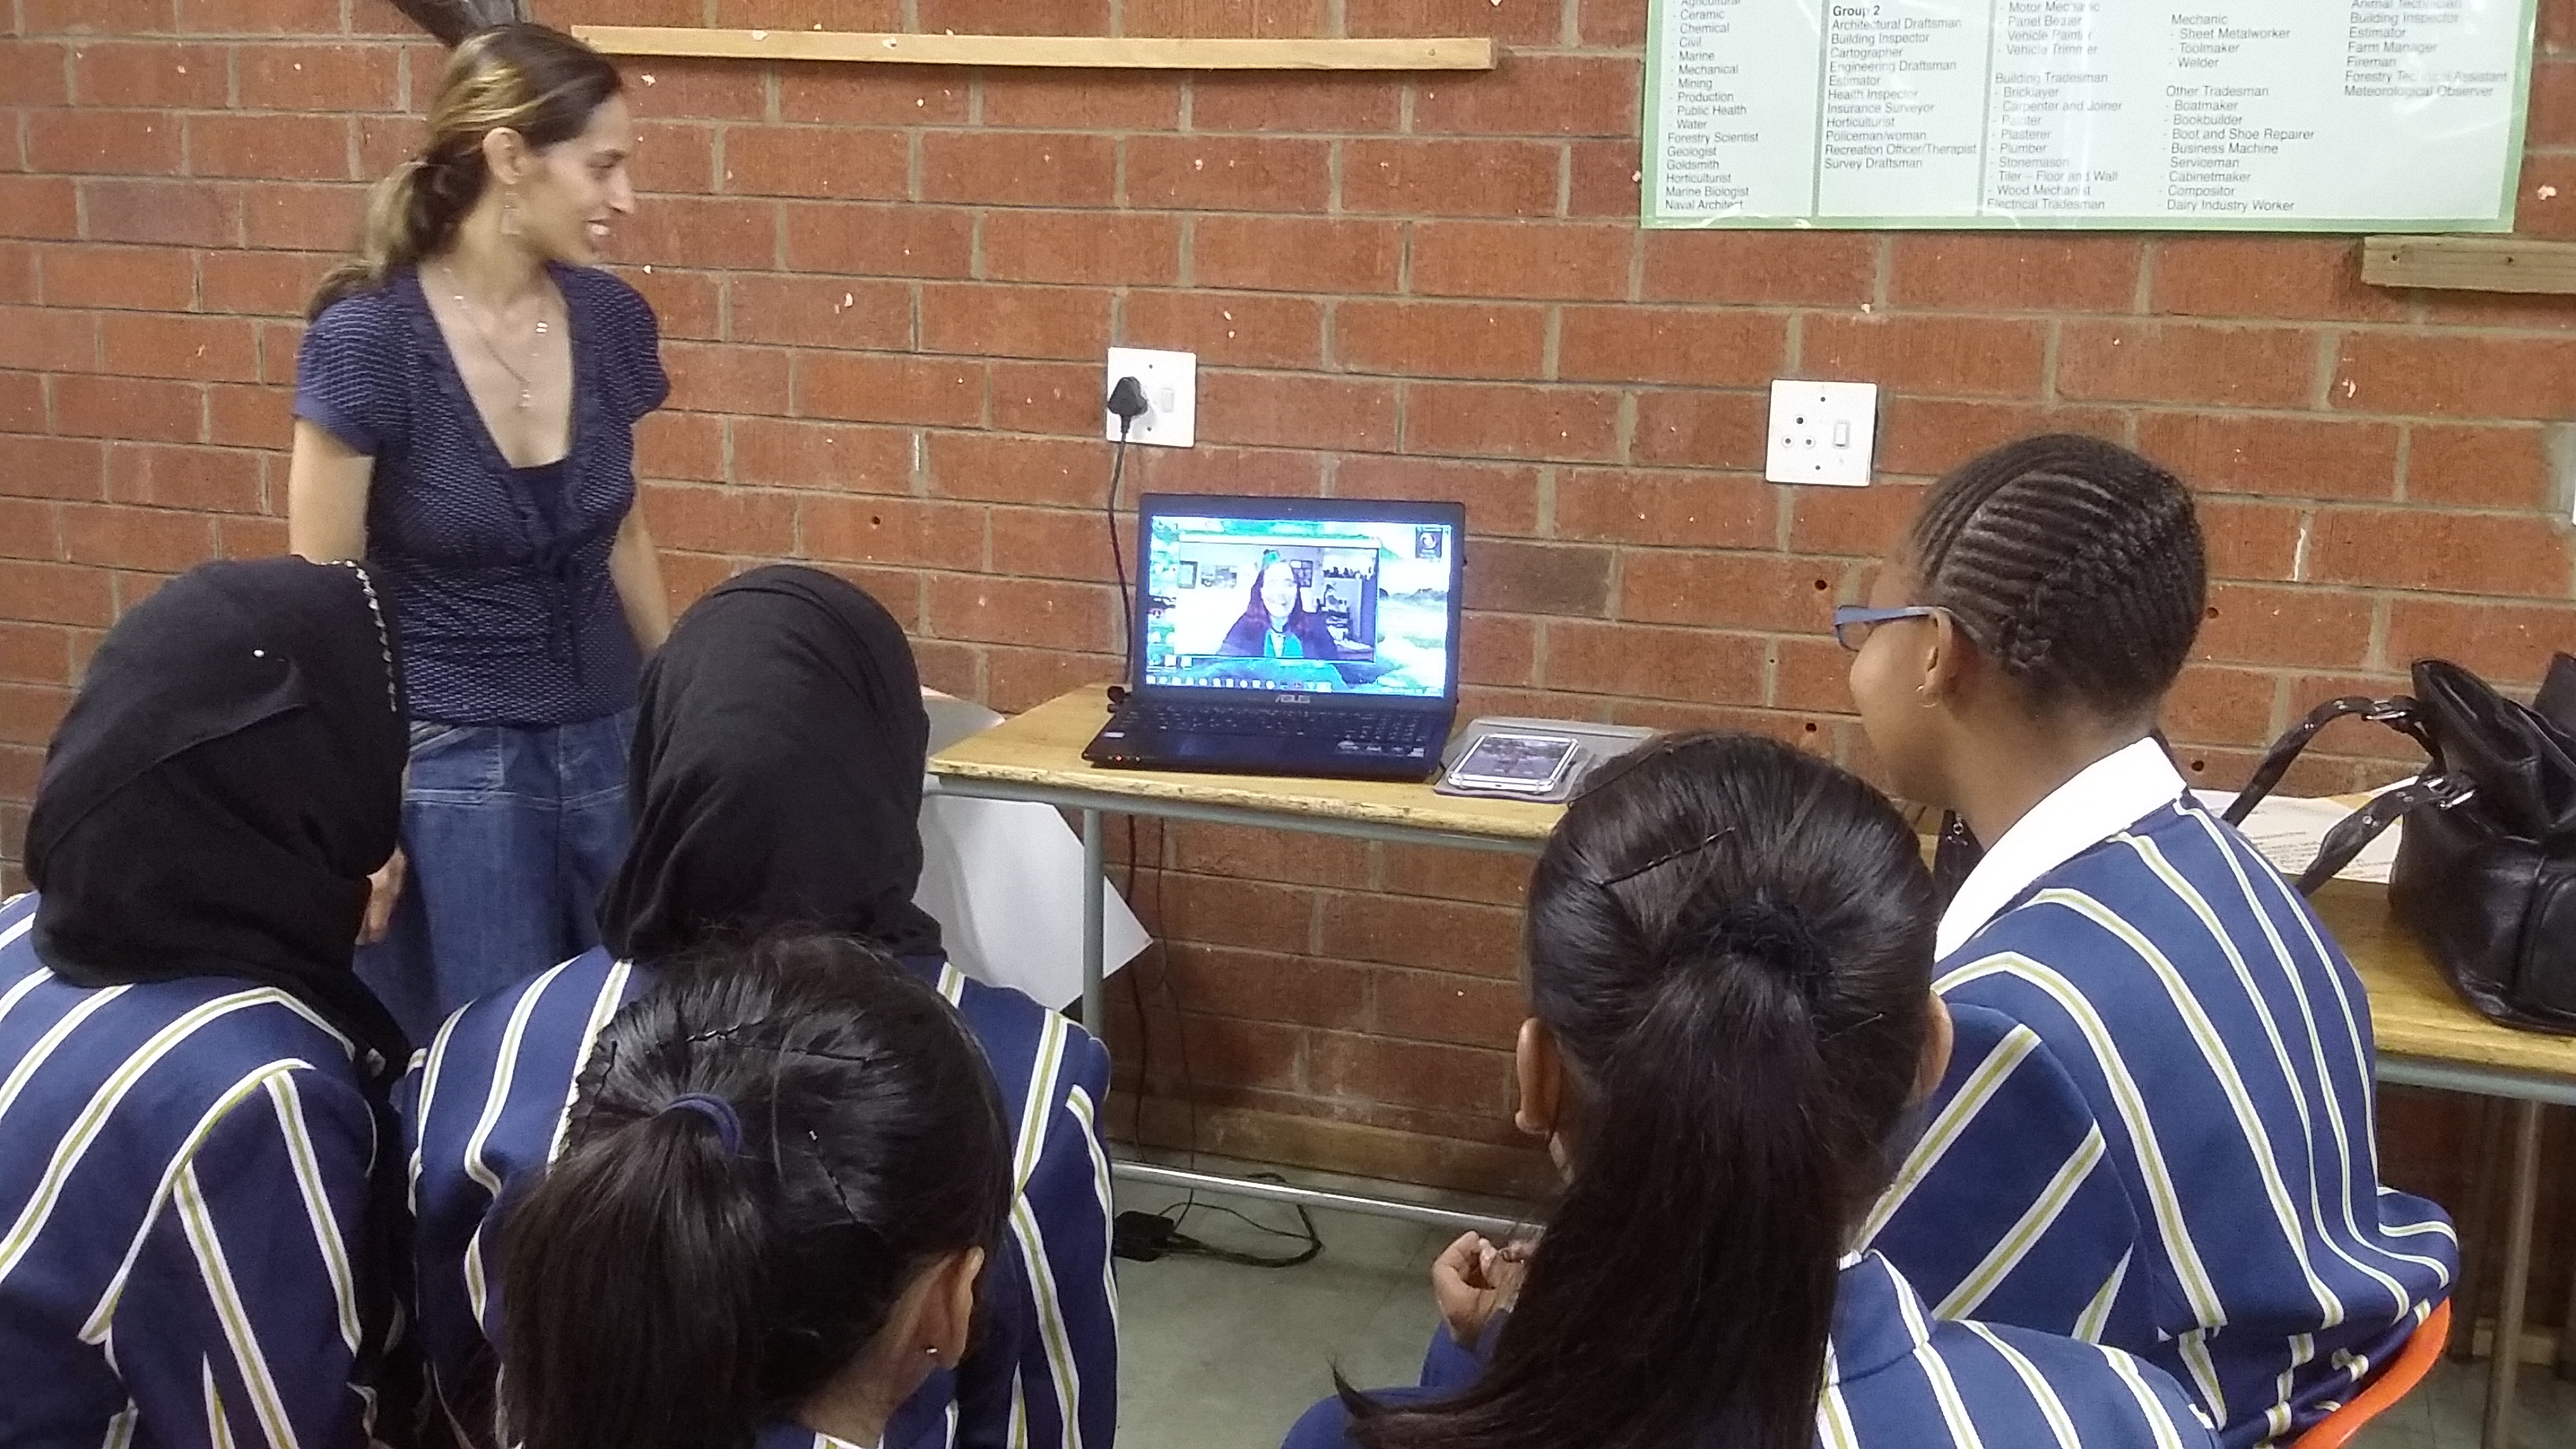 Skyping with mentors